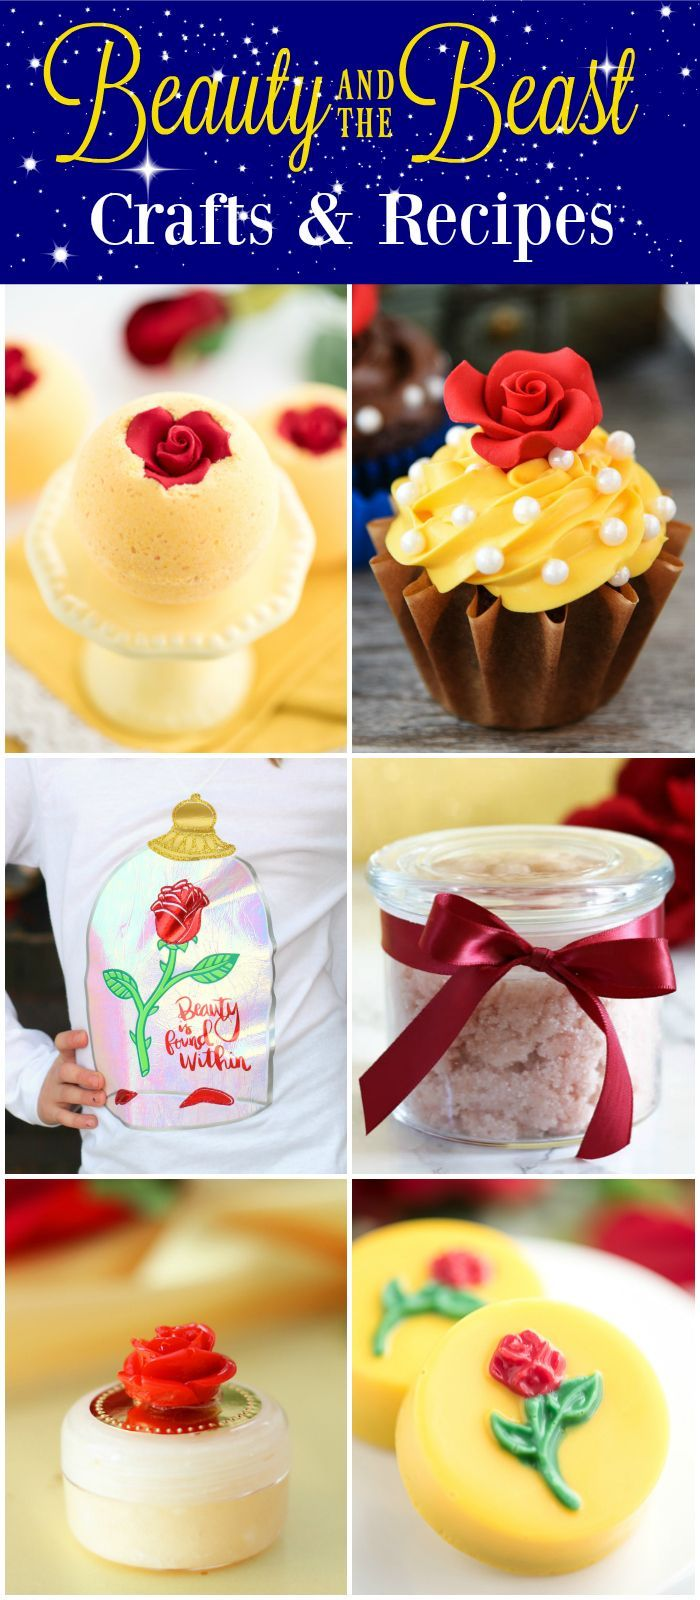 Beauty and the Beast Ideas - crafts and recipes inspired by Disney's Beauty and the Beast.